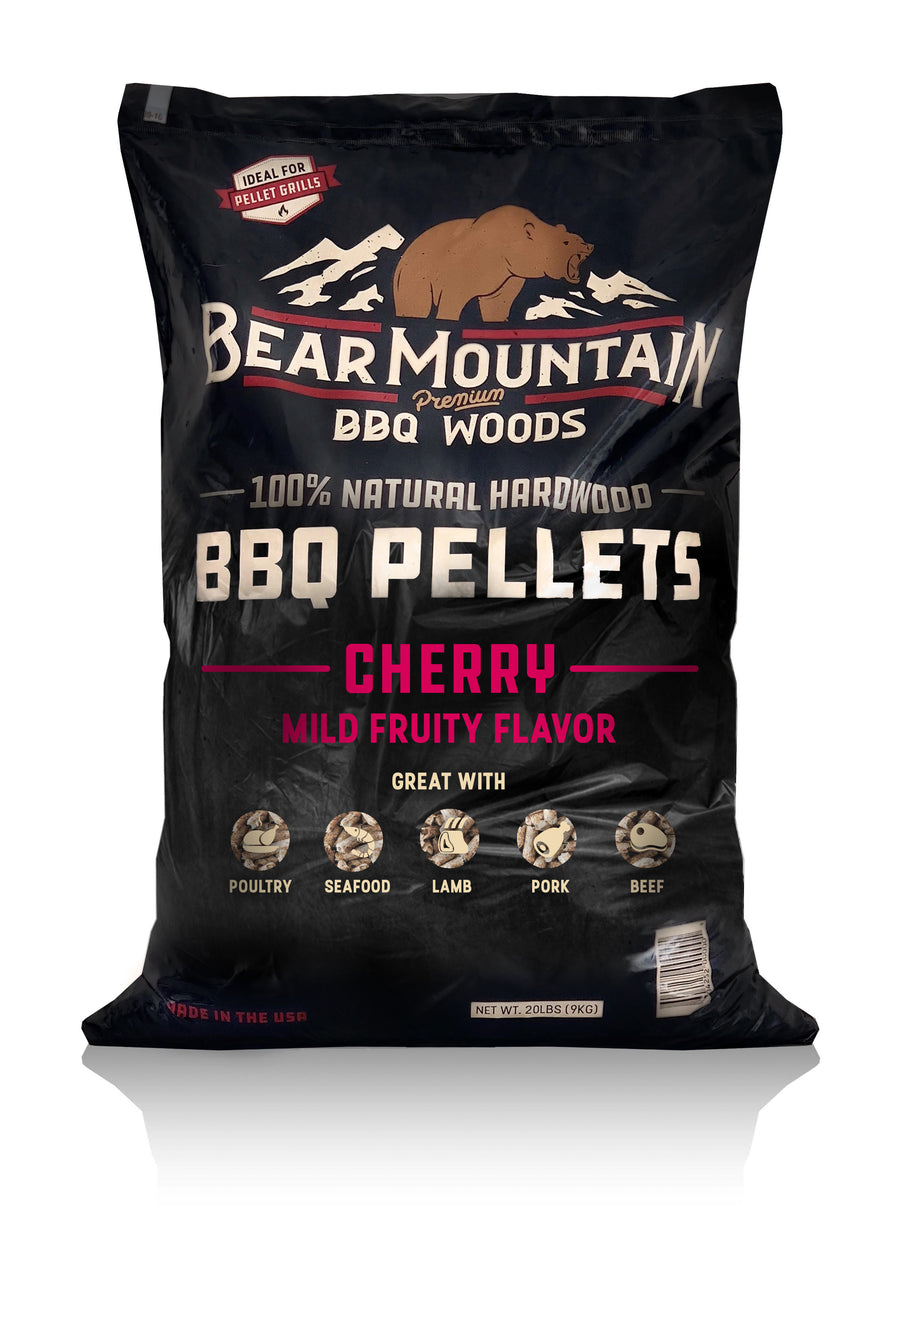 Bear Mountain BBQ Wood Pellets Cherry